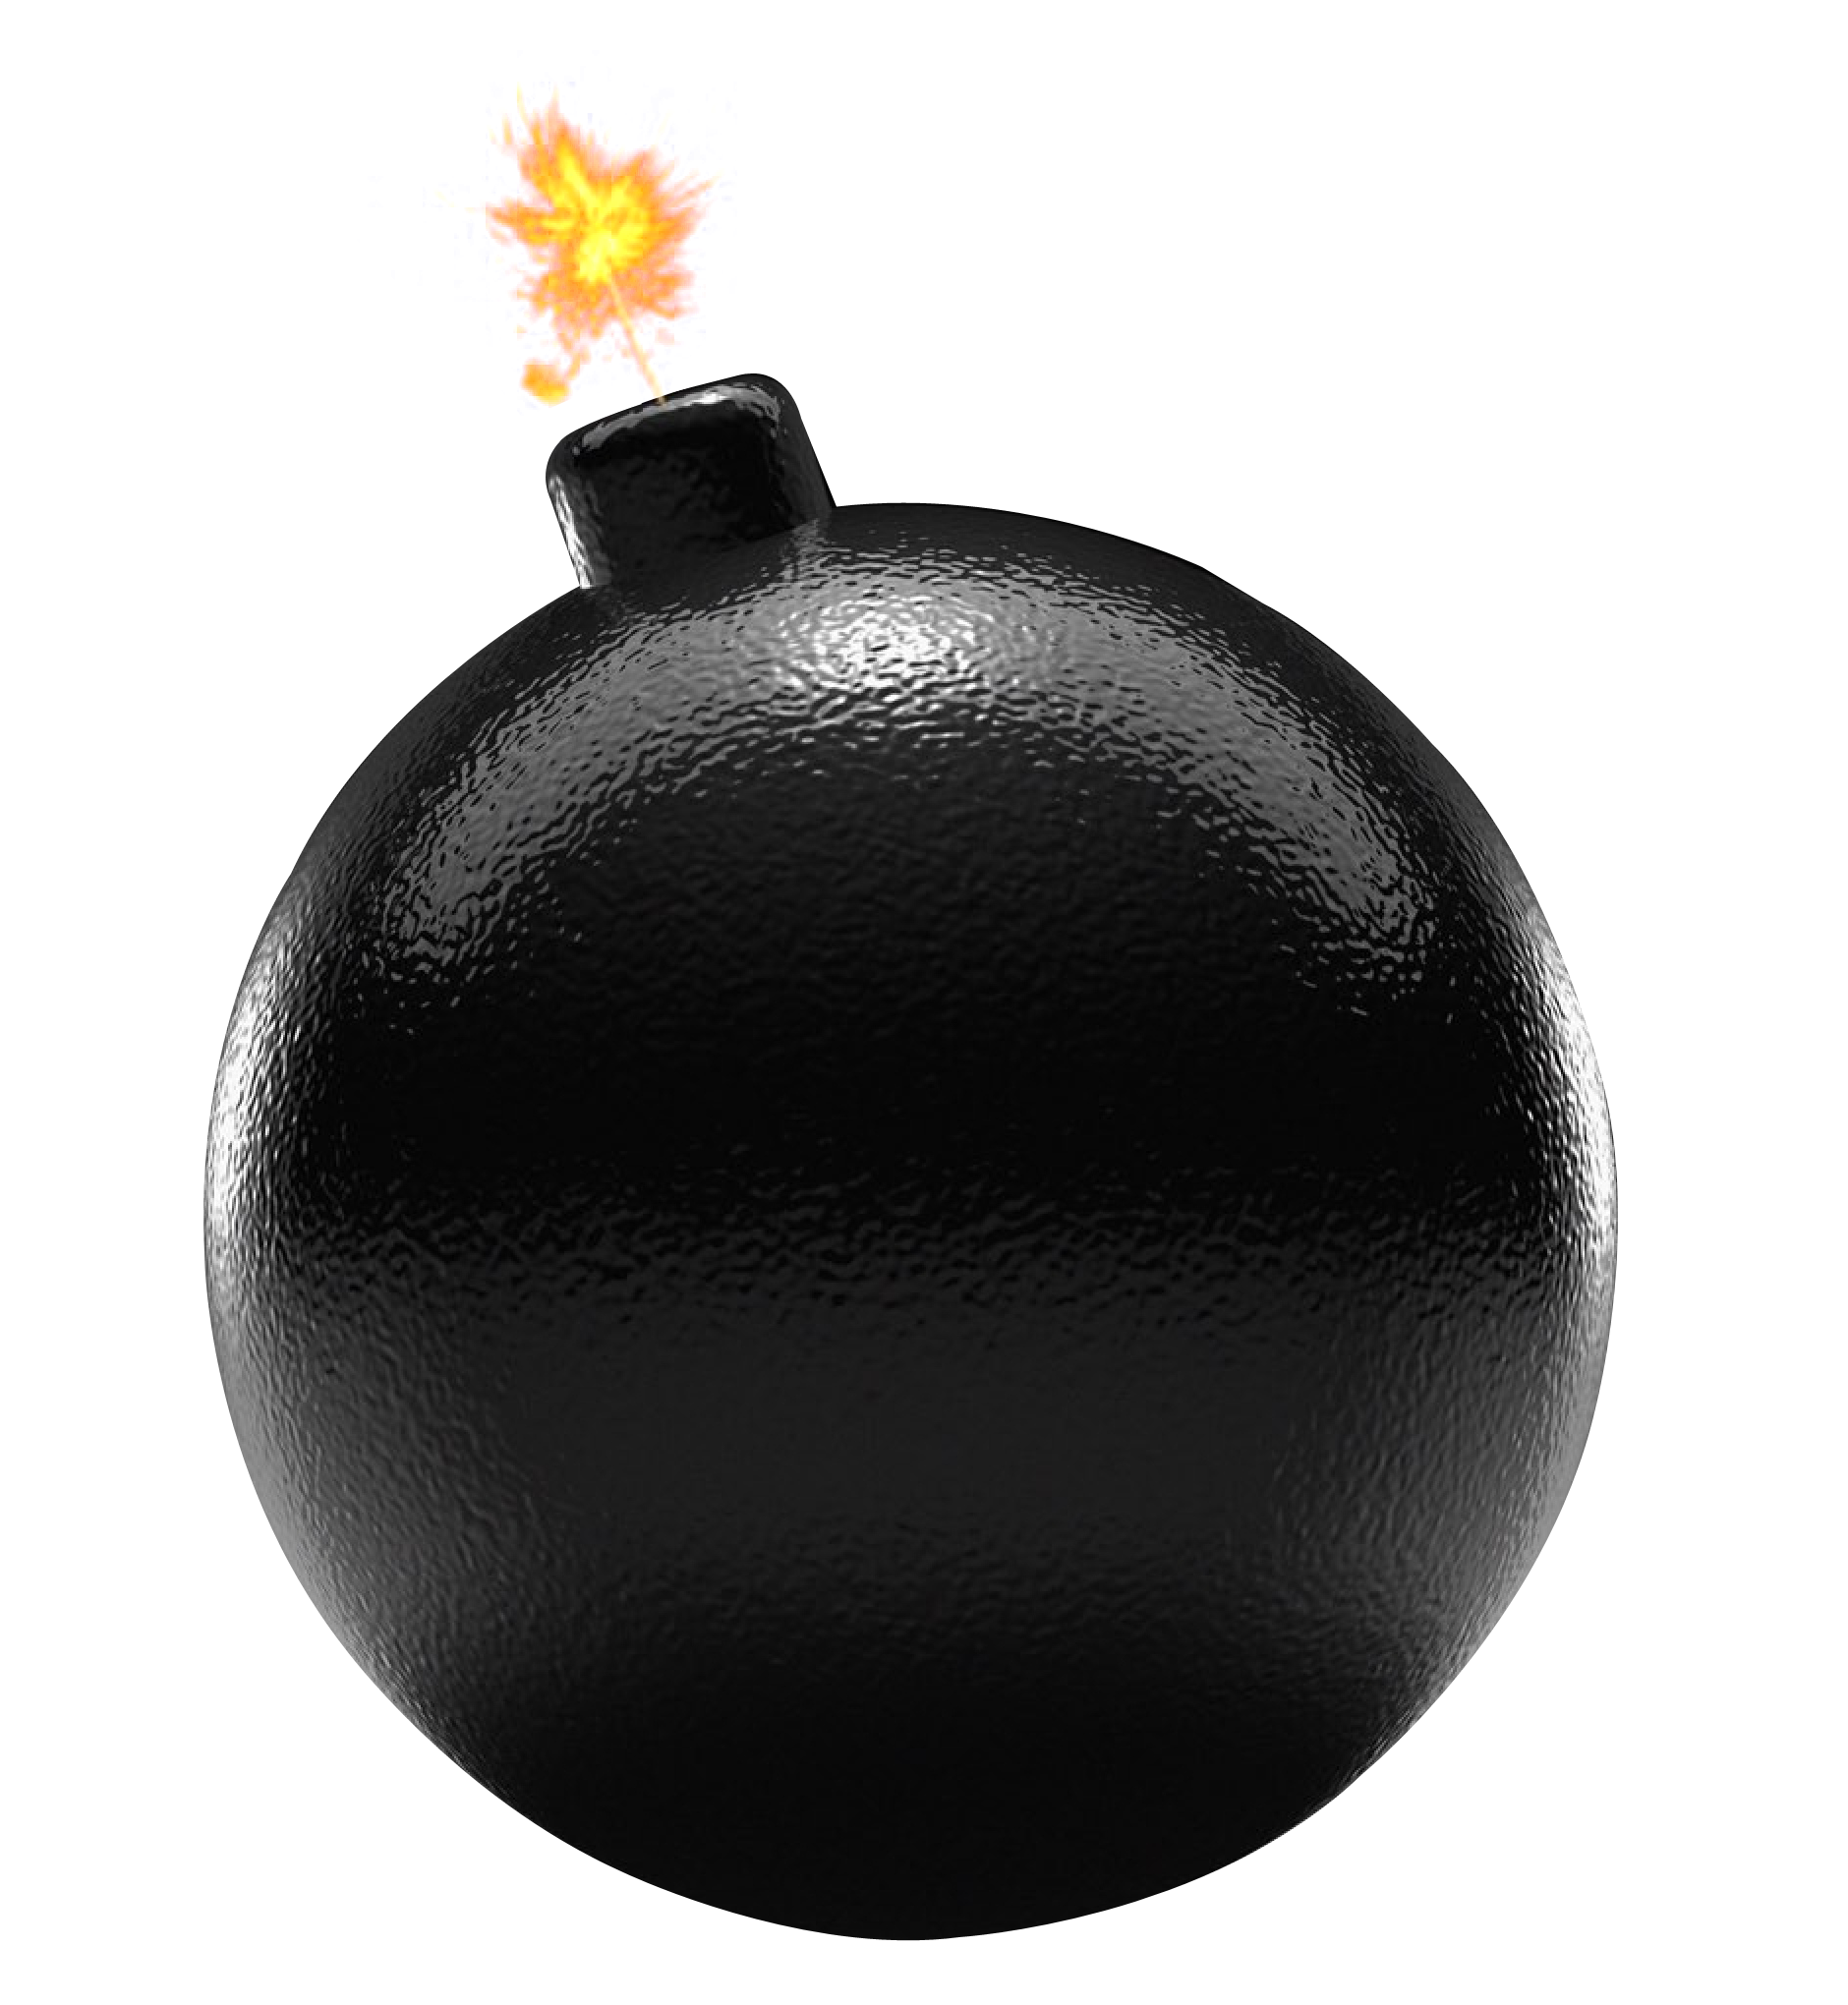 Bomb Transparent Background #46592.